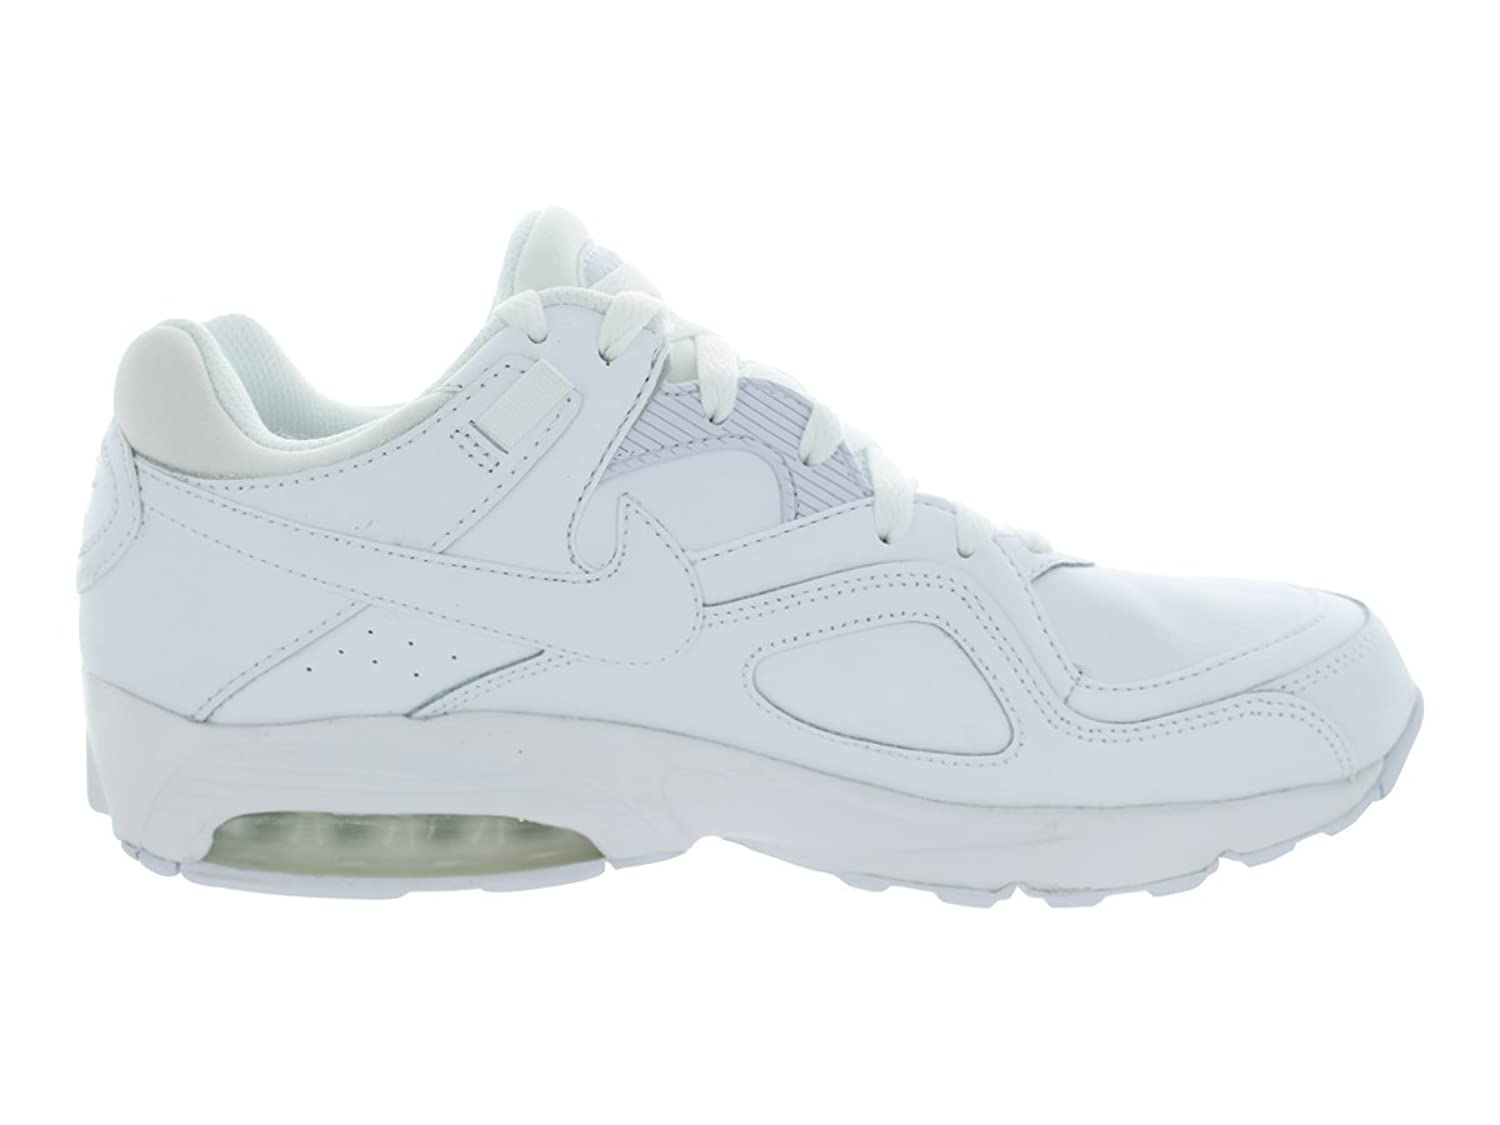 Details about Nike Air Max Go Strong Leather Leather Trainers Men White Shoes New 456784111